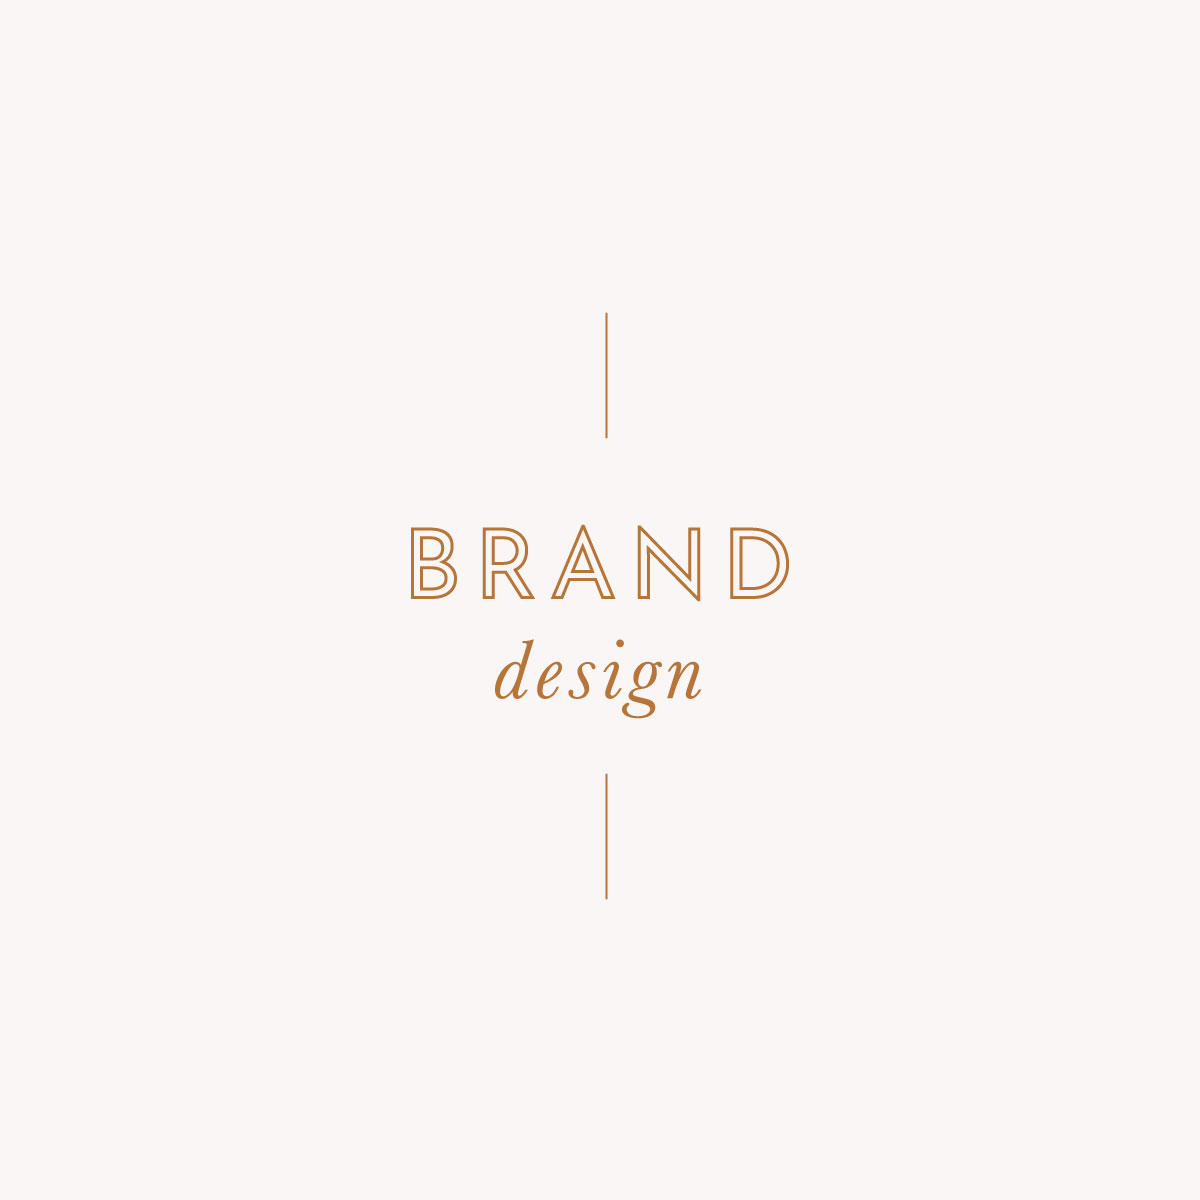 - A brand is more than a logo - it's a strategic identity crafted to resonate with your ideal audience. With this package, we establish the essentials for your brand's overall look and feel. I can help you capture your brand's unique personality and style through tailor-made designs that elevate your business.• brand discovery process• brand strategy + mood board• primary logo design• secondary logo design• color palette• typography treatments• brand style guide• 2-3 collateral